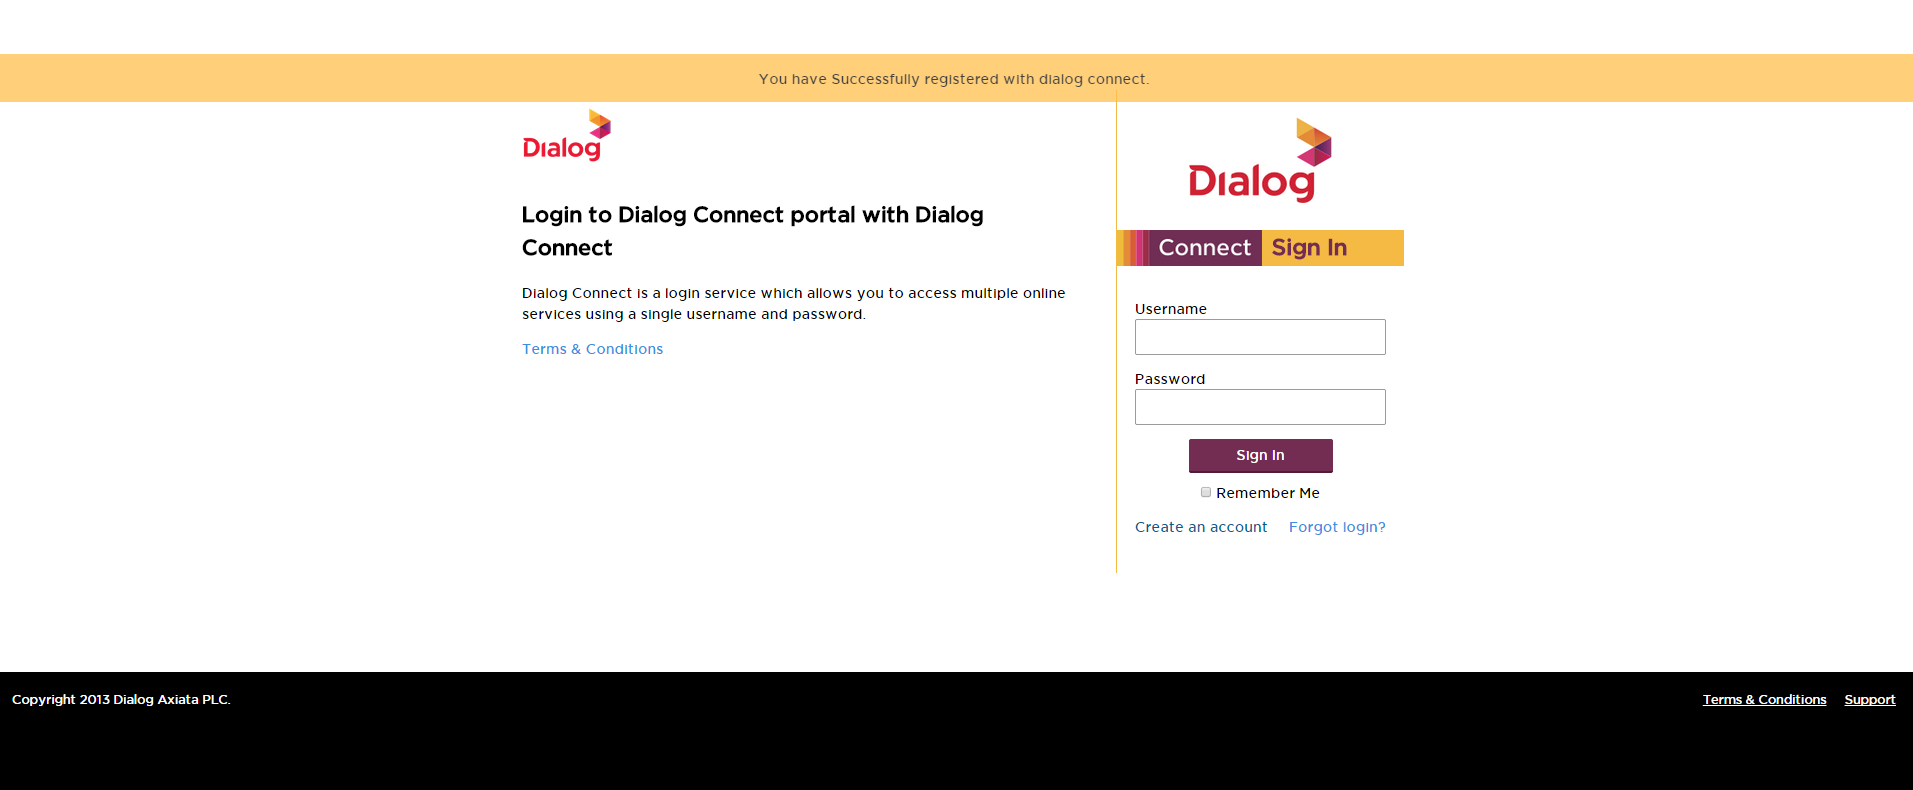 How to create a Dialog Connect Account – Ideamart